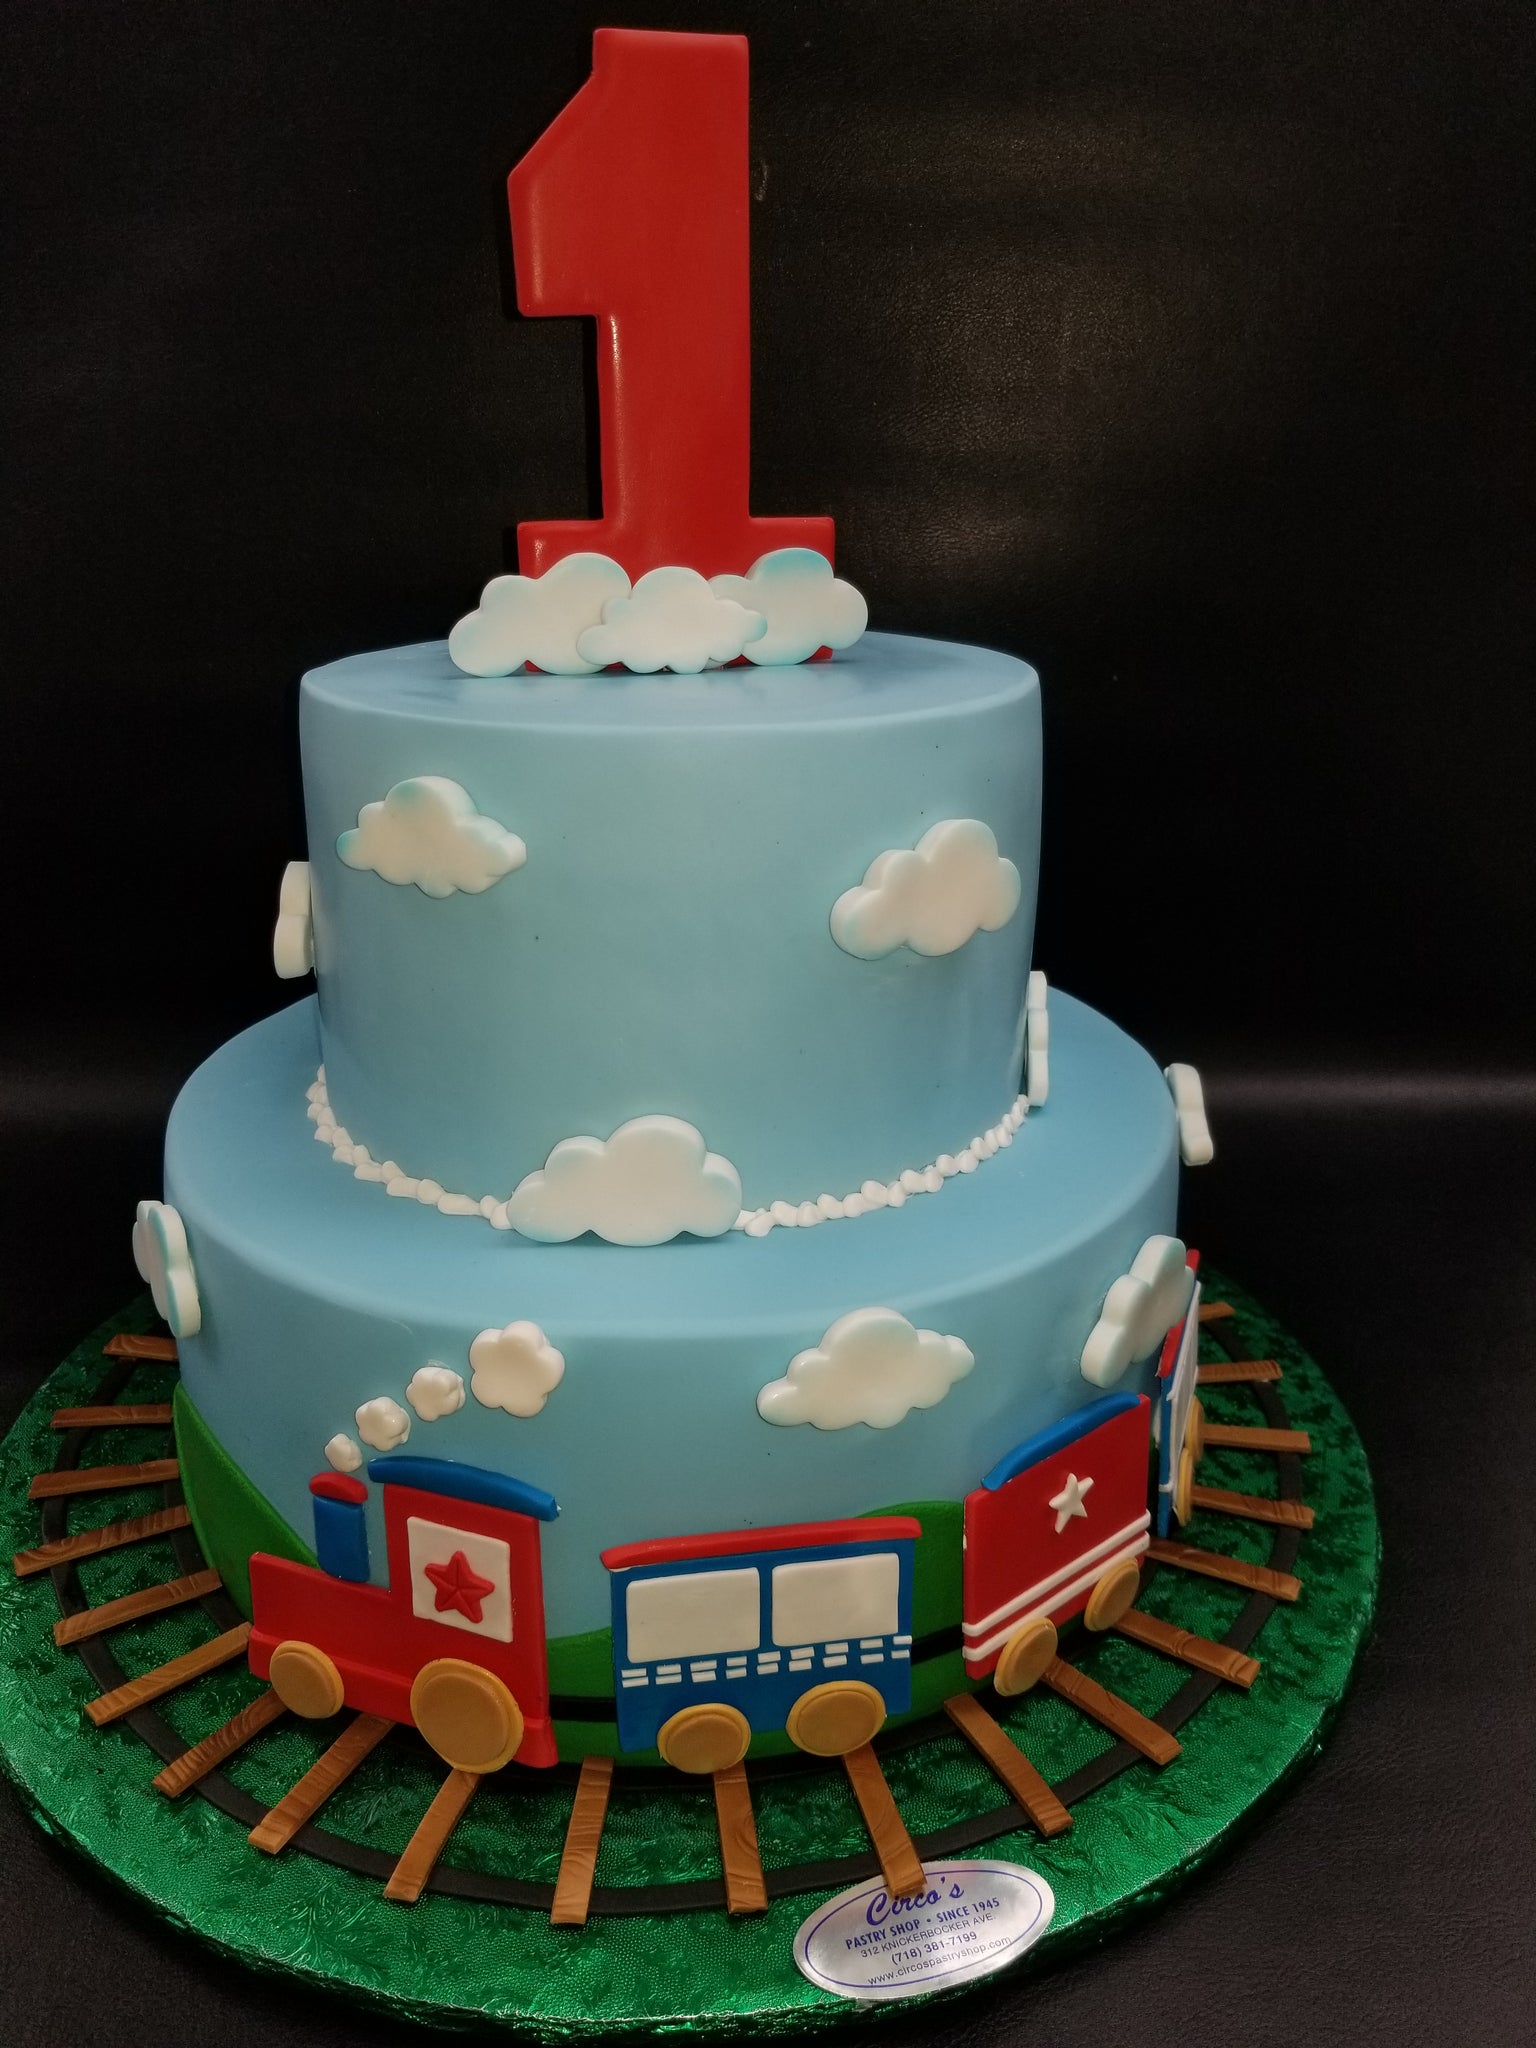 1st Birthday Train Cake B0837 Circos Pastry Shop